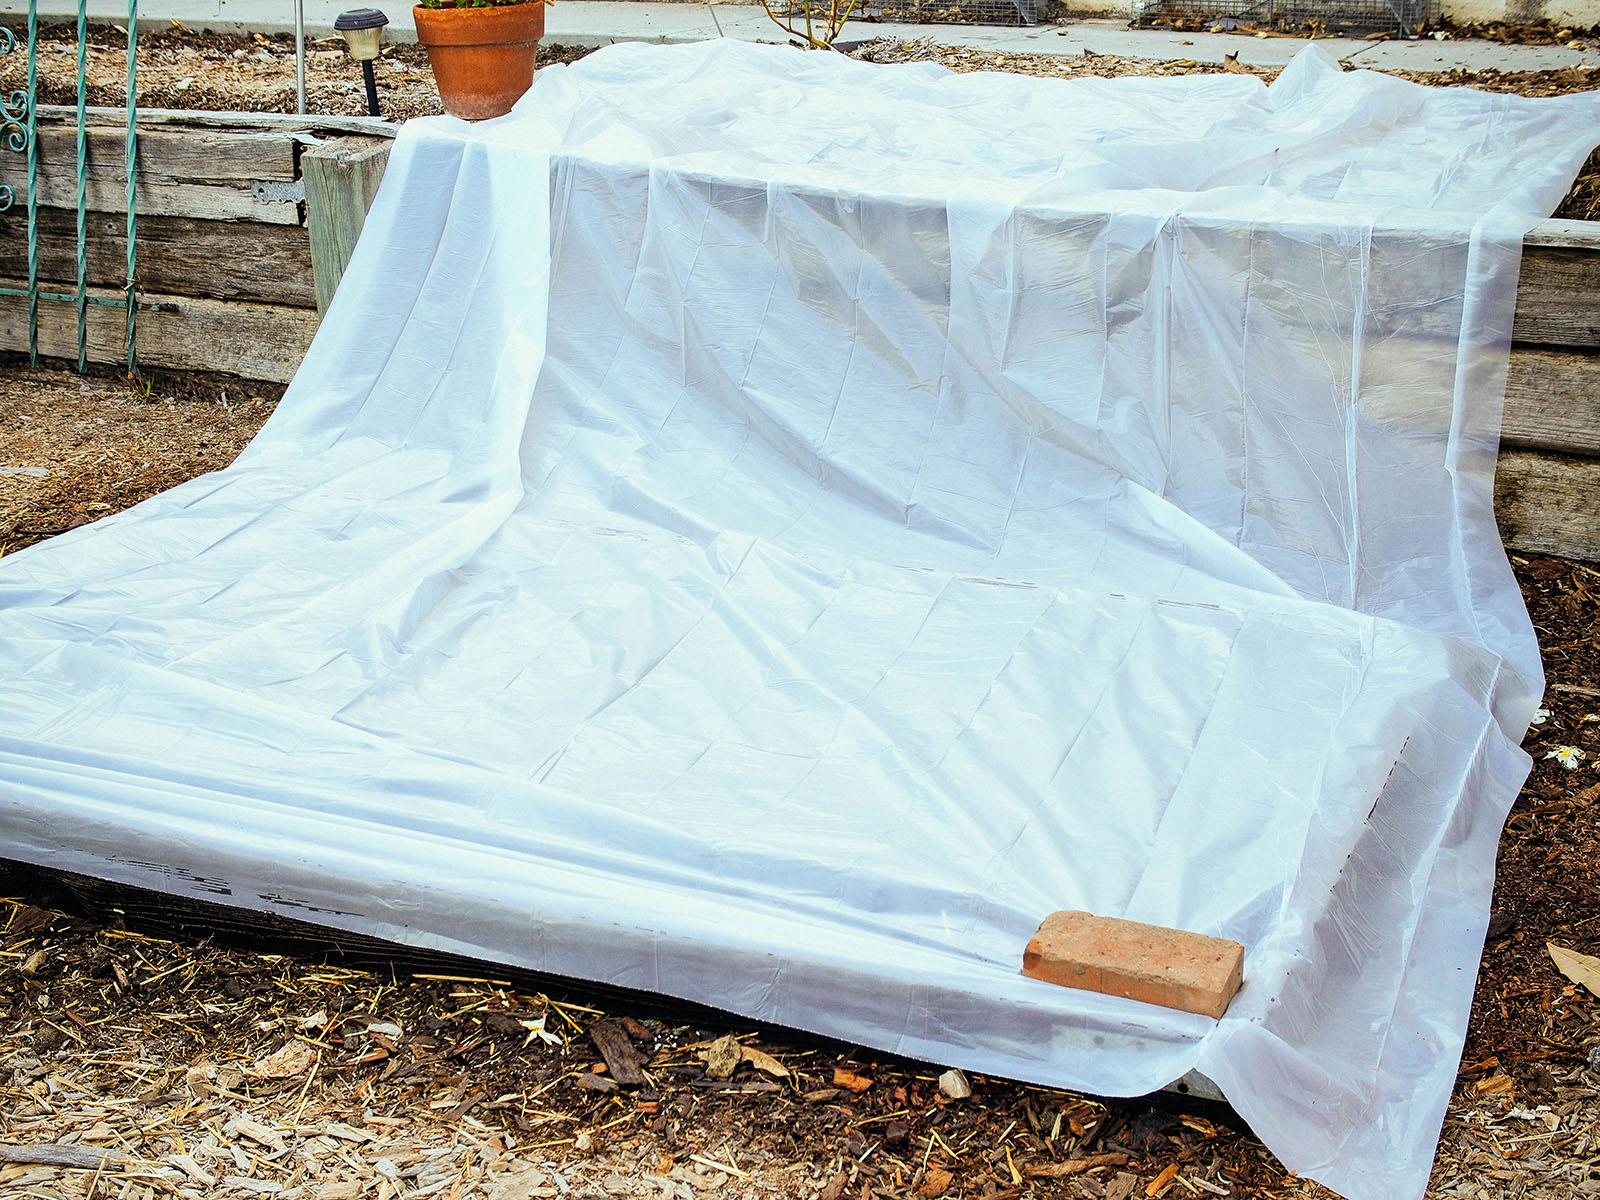 Lay the plastic over the bed